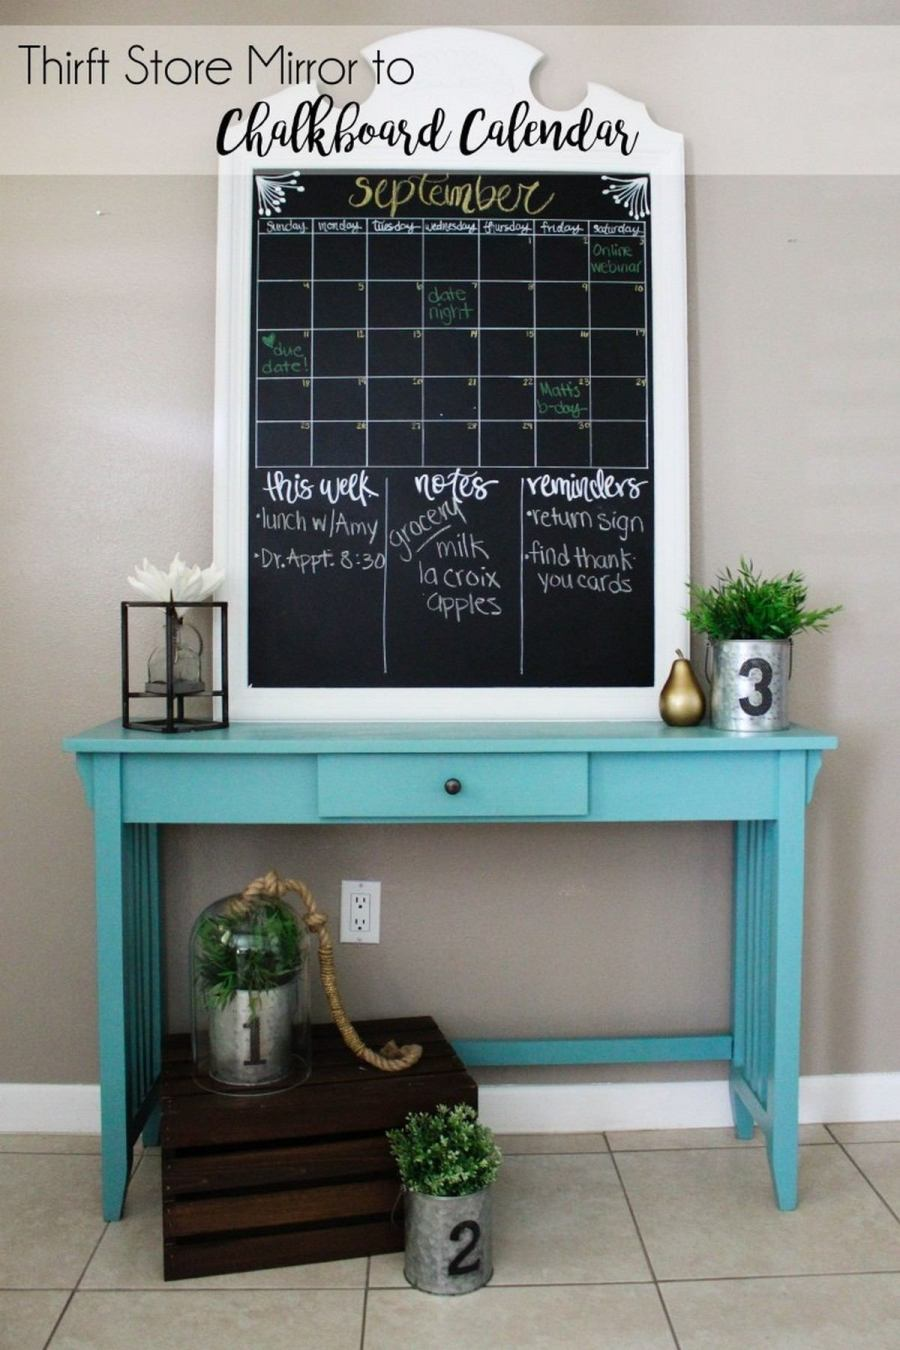 Chalkboards are extremely popular for any kinds of spaces – they are comfy in using and can inspire creativity and more communication, they can be also used as pinboards and magnet boards to make them more functional.